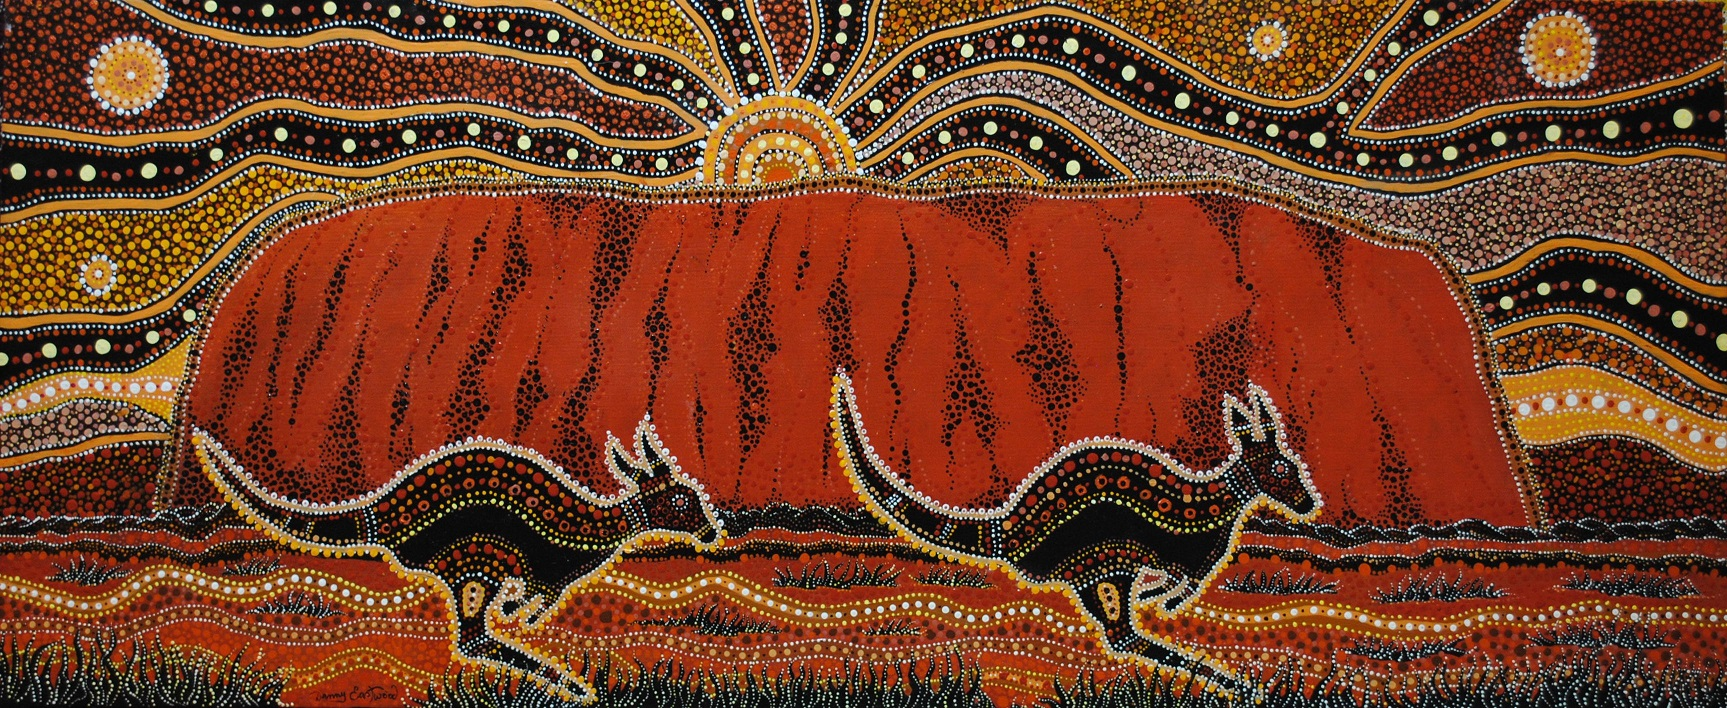 Painting of Uluru by Aboriginal Artist Danny Eastwood. Image courtesy of Karlangu Aboriginal Art Centre. SOURCE: theculturetrip.com